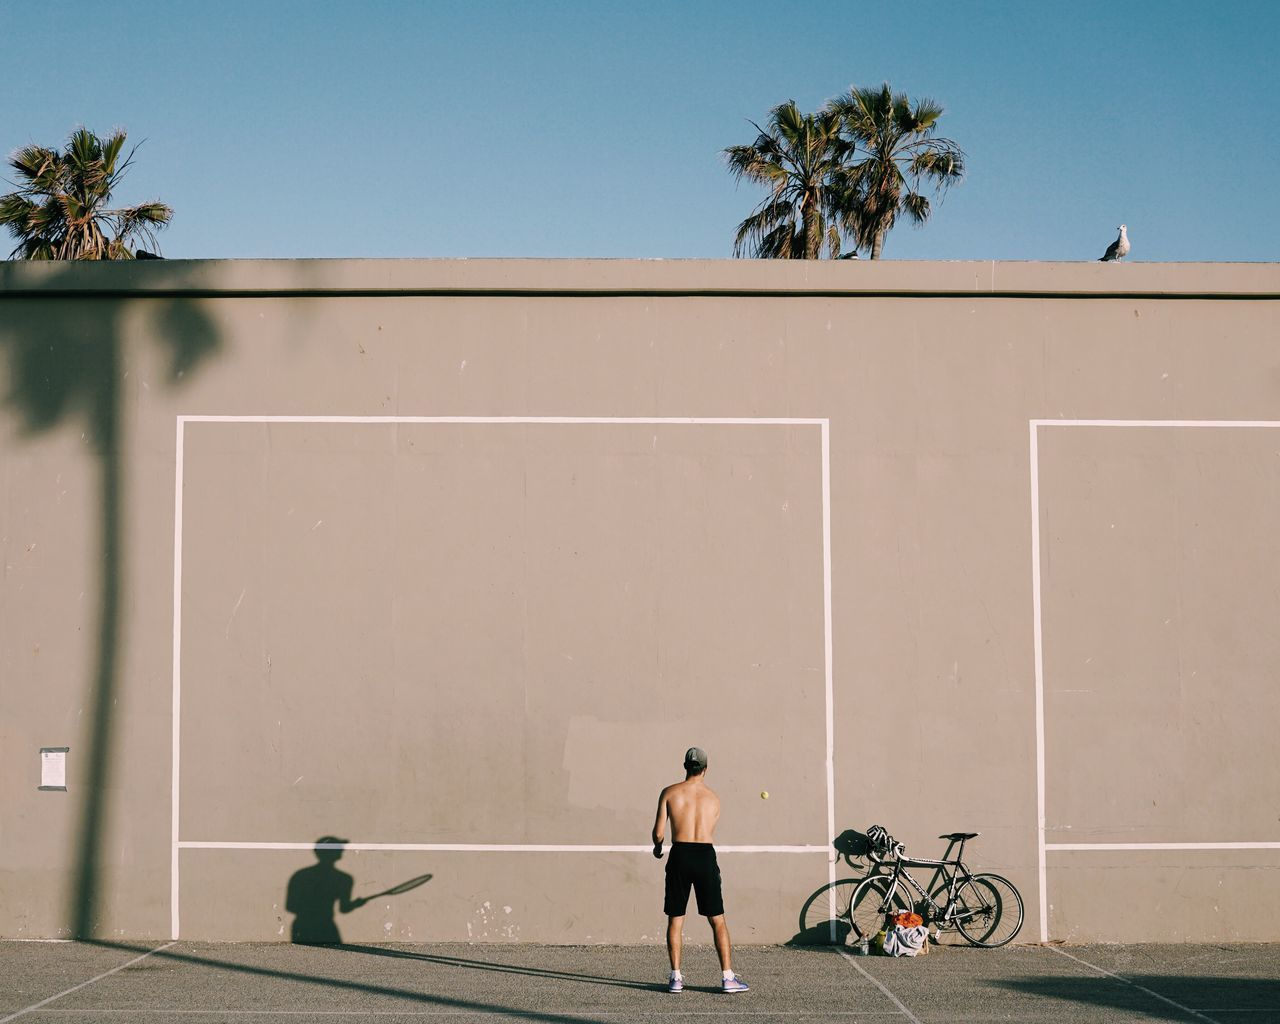 Bicycle,  Clear Sky,  Day,  Full Length,  Horizontal Image